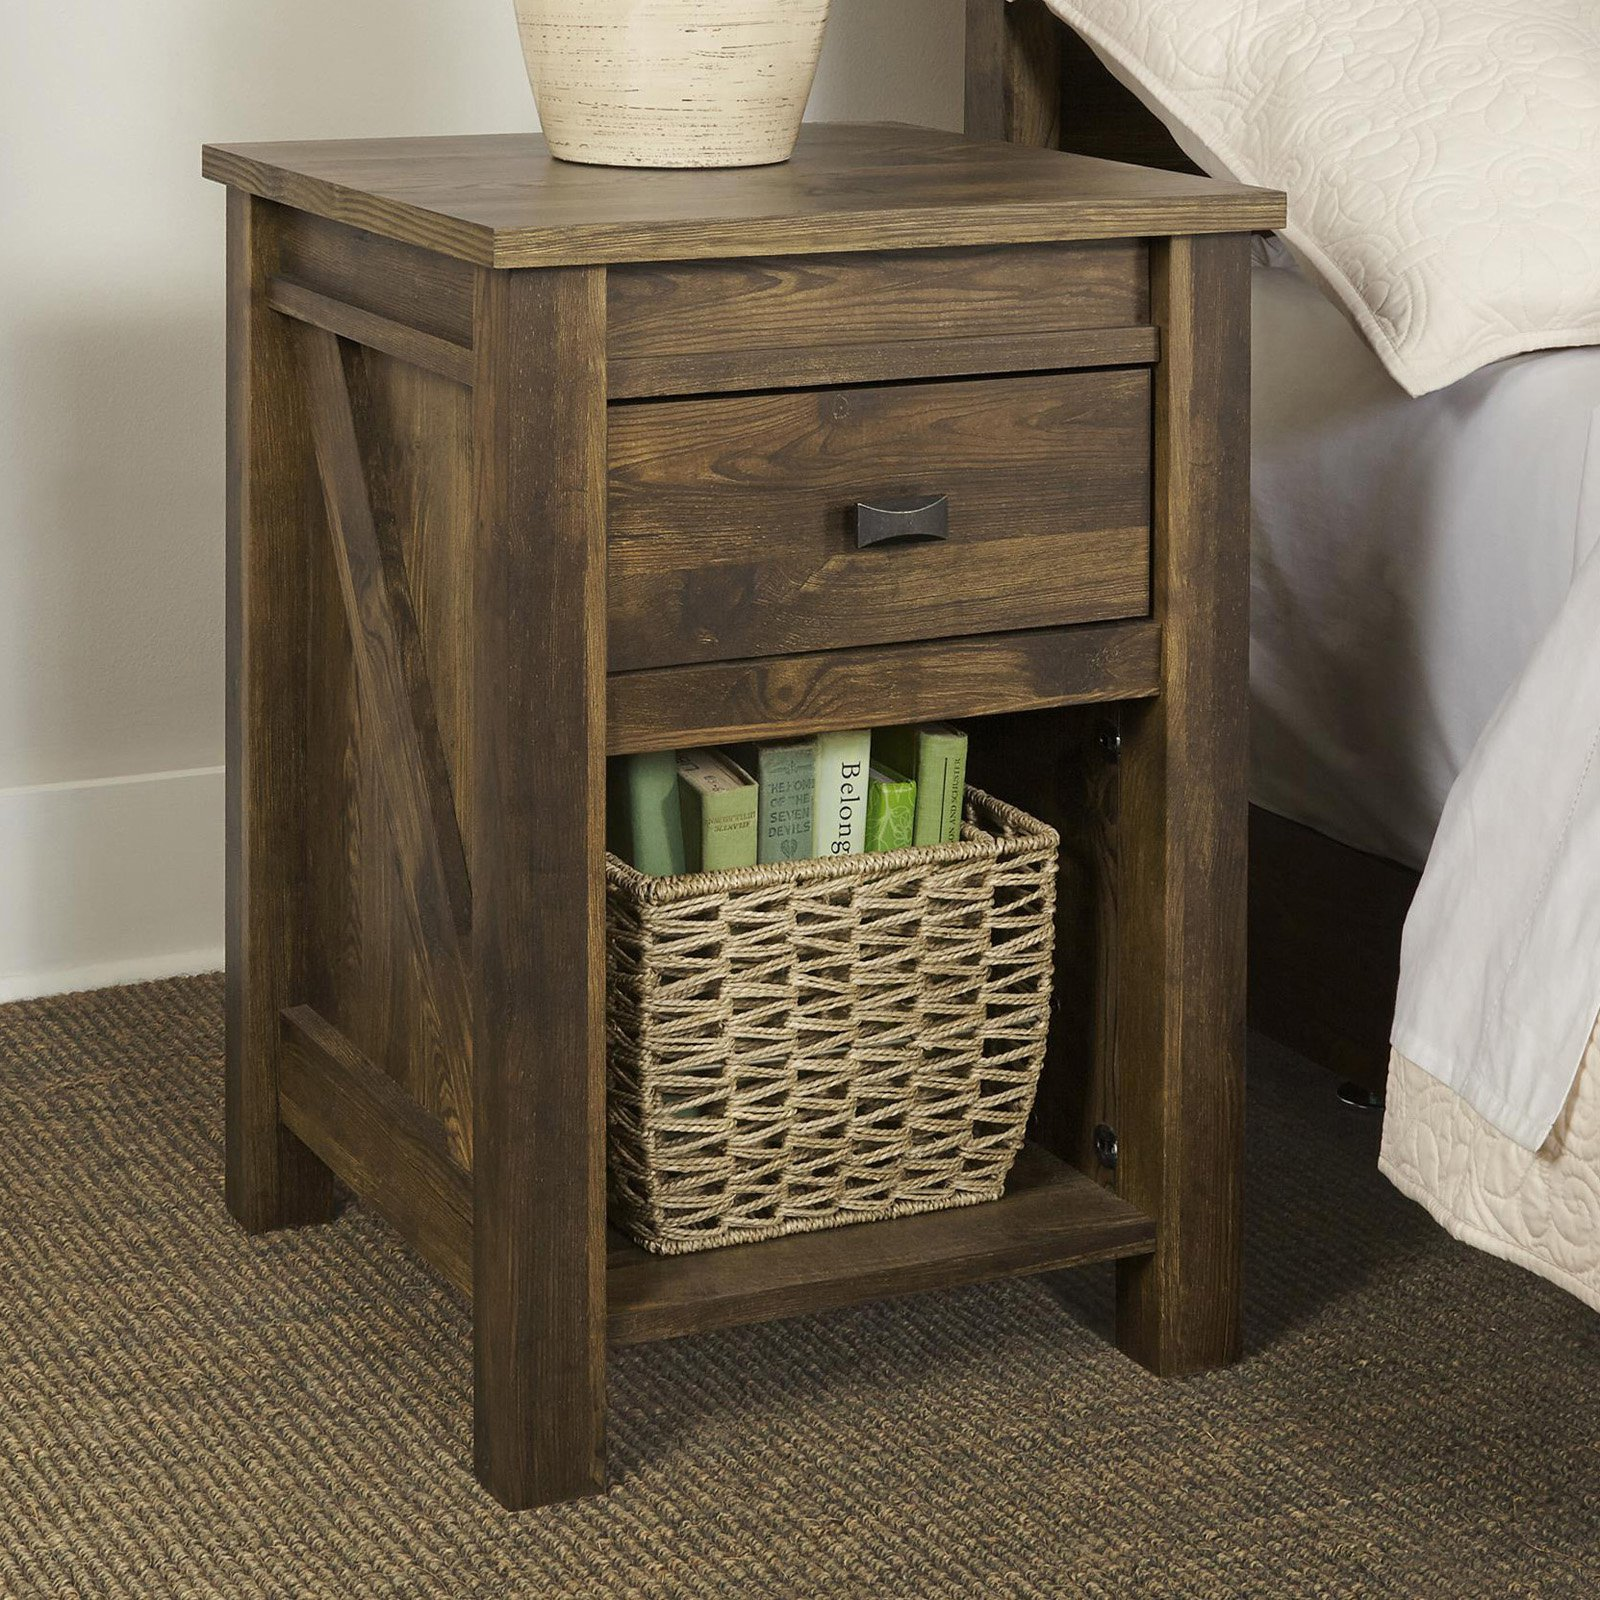 rustic end table farmhouse reclaimed barn wood nightstand side accent furniture metal legs entryway with storage baskets small pedestal folding ikea kitchen stools floor tall thin